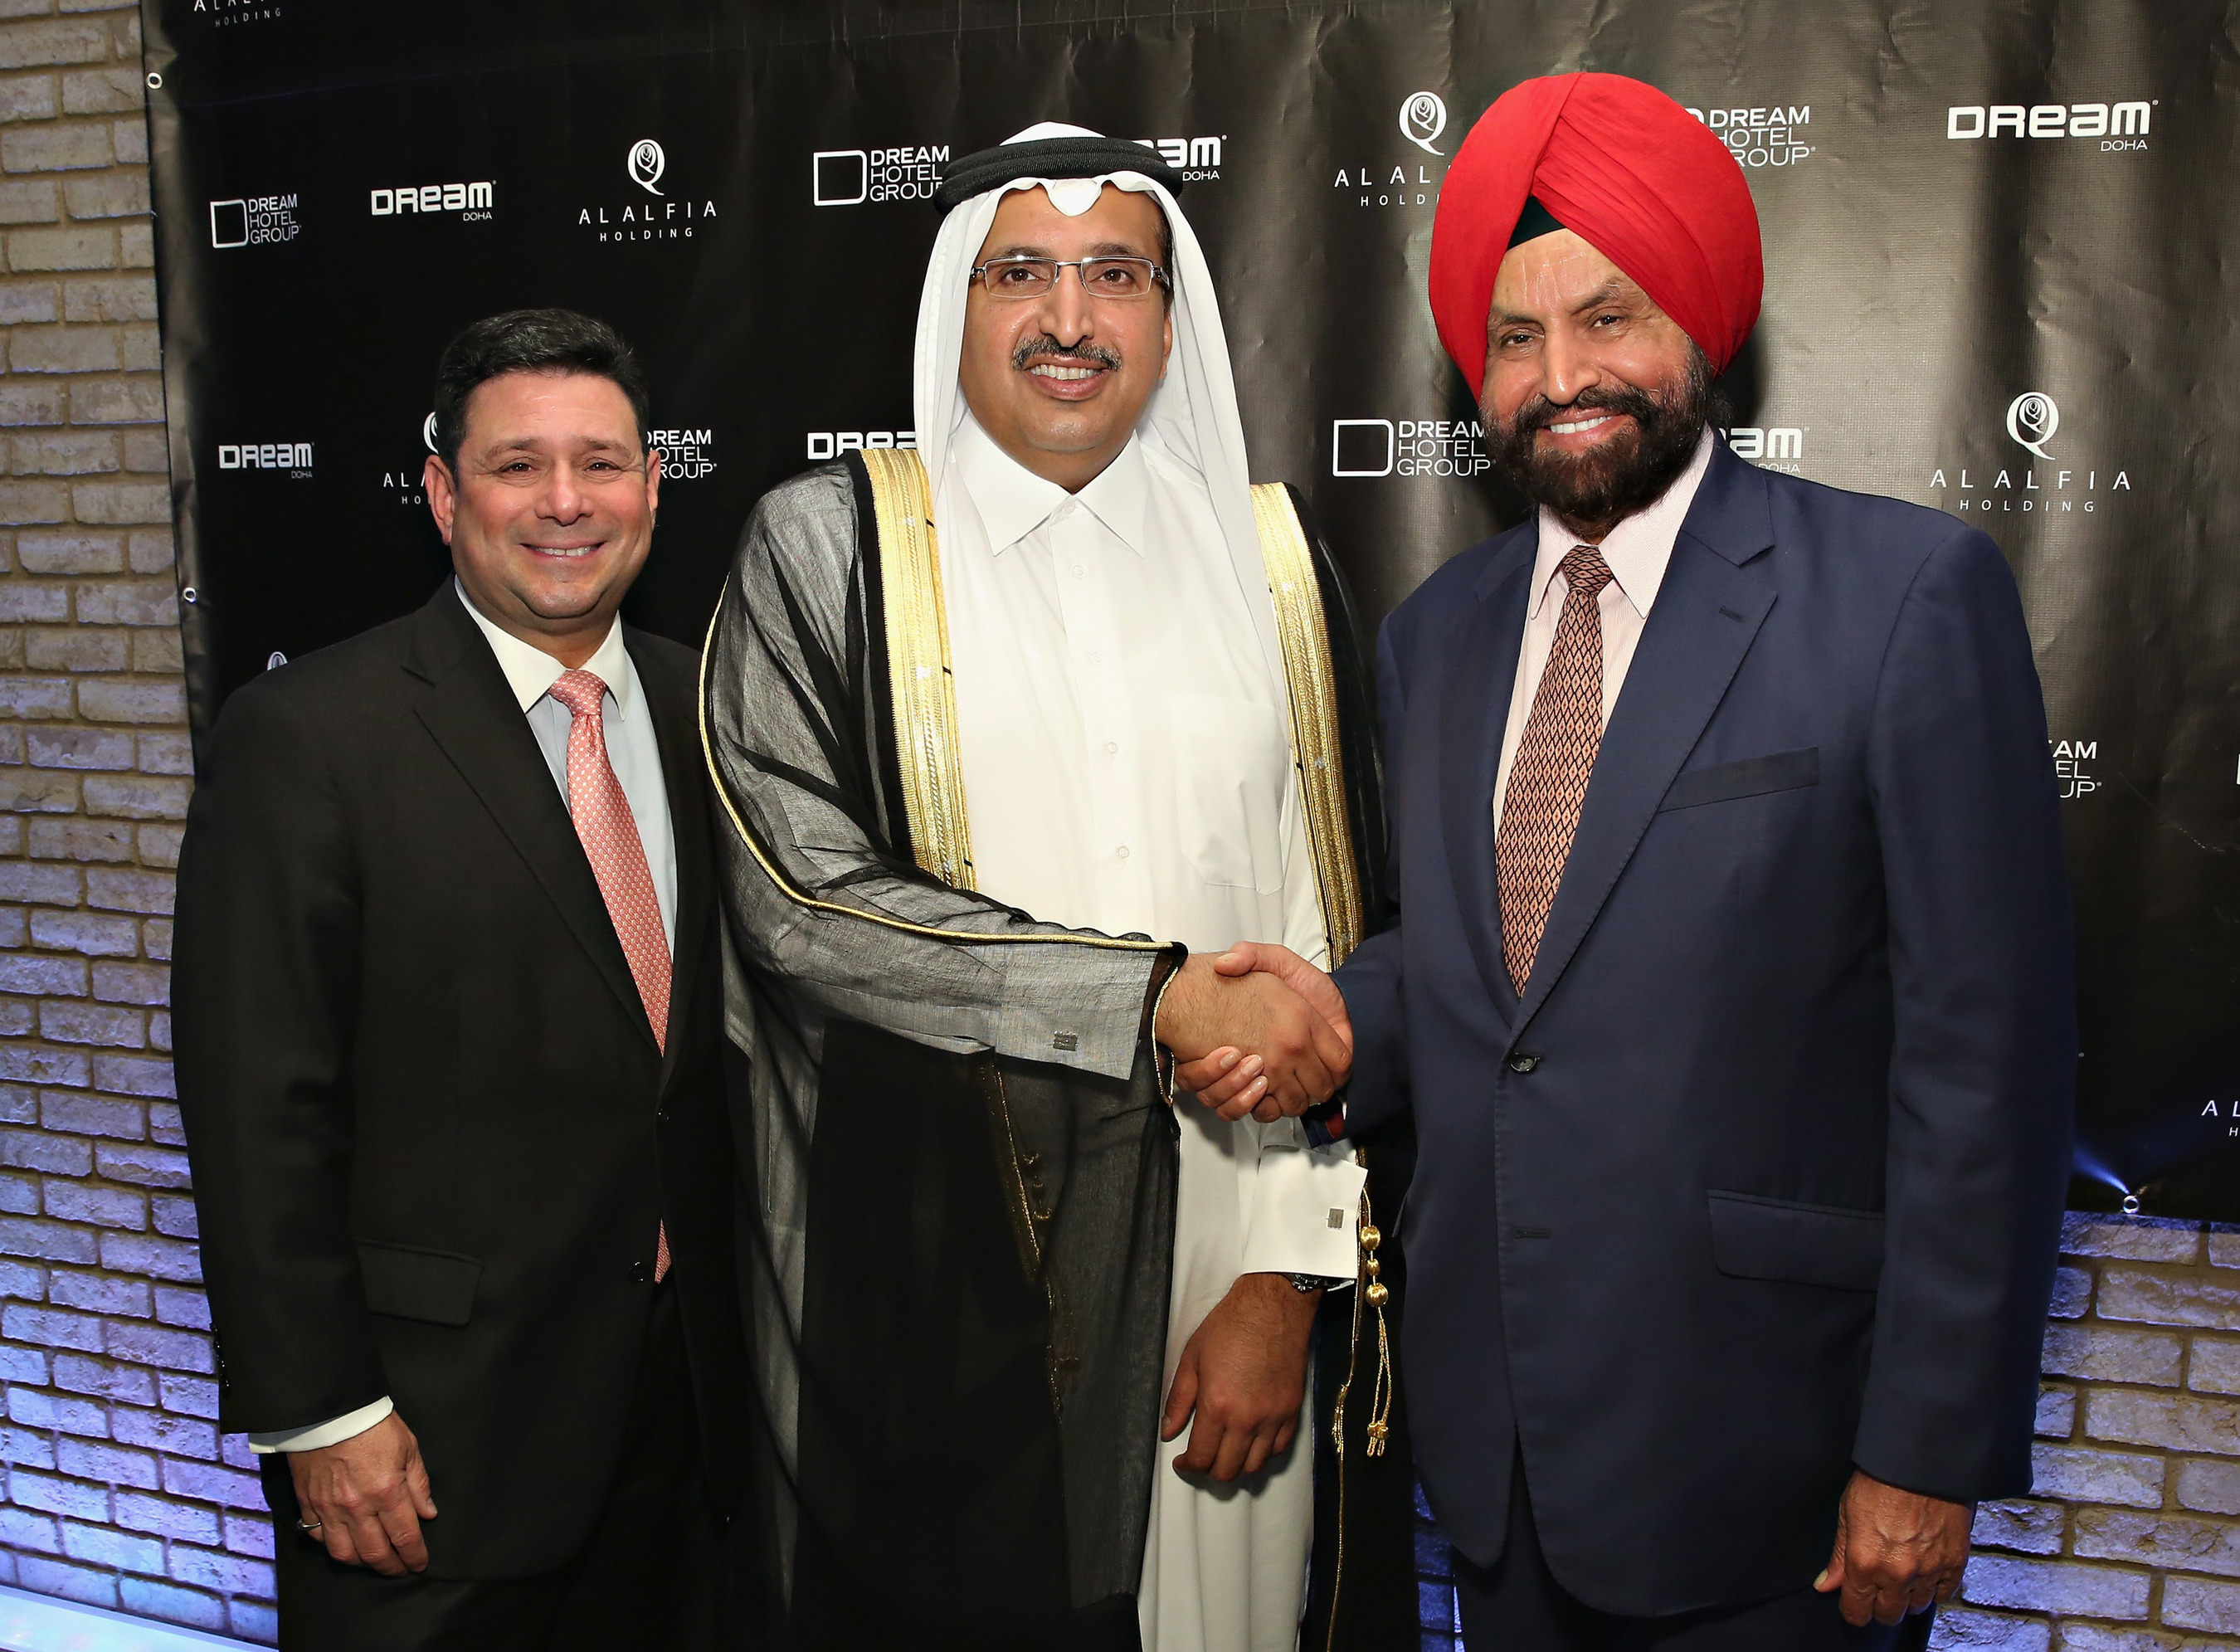 Dream Doha signing ceremony at Dream Downtown New York, L-R: Jay Stein, CEO, Dream Hotel Group; Sheikh Sultan, Al Alfia Holding; Sant Singh Chatwal, Chairman, Dream Hotel Group.